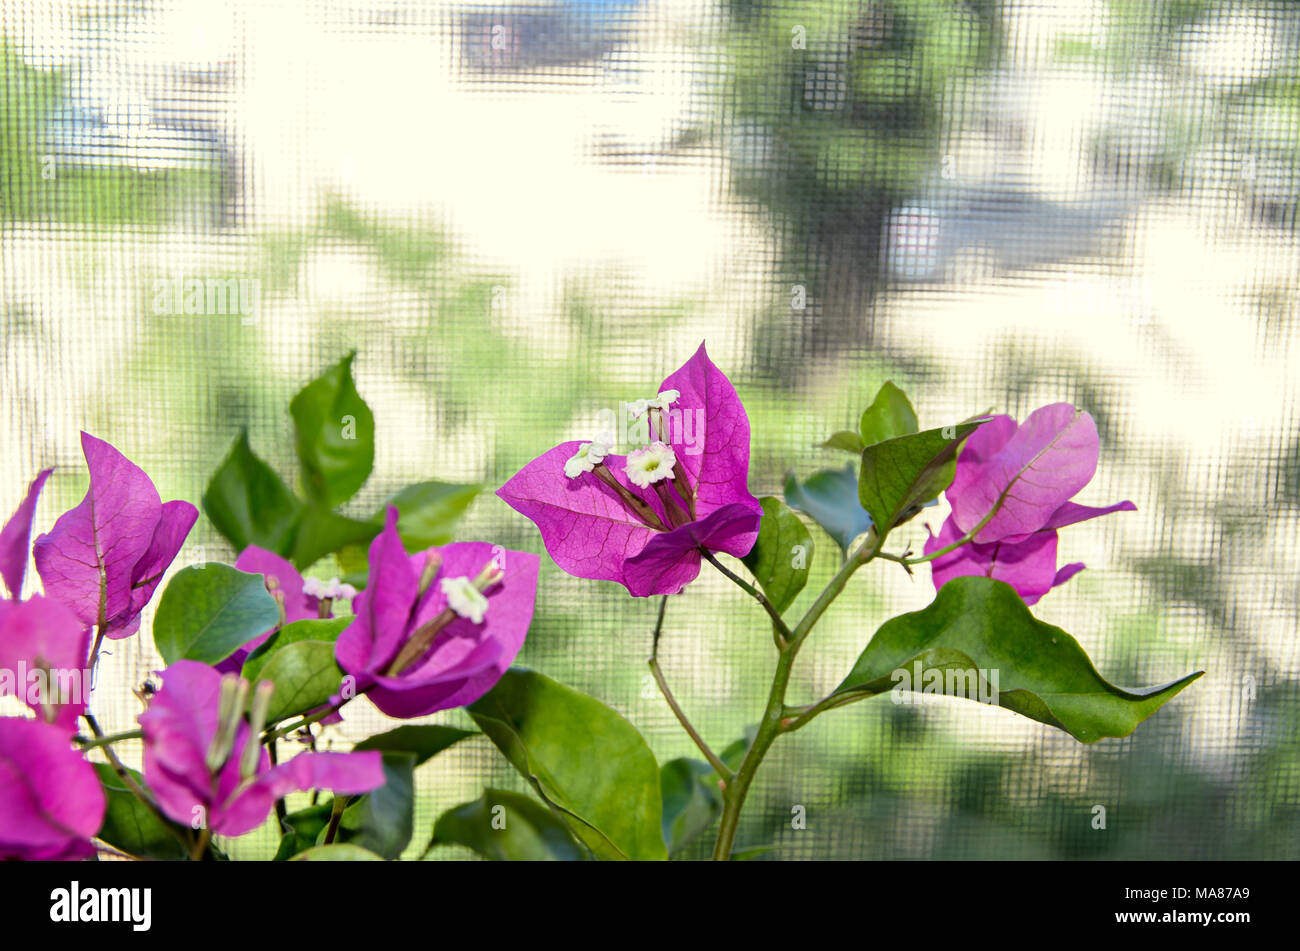 Bougainvillea Pink Ornamental Flowers Paper Flower Branch With